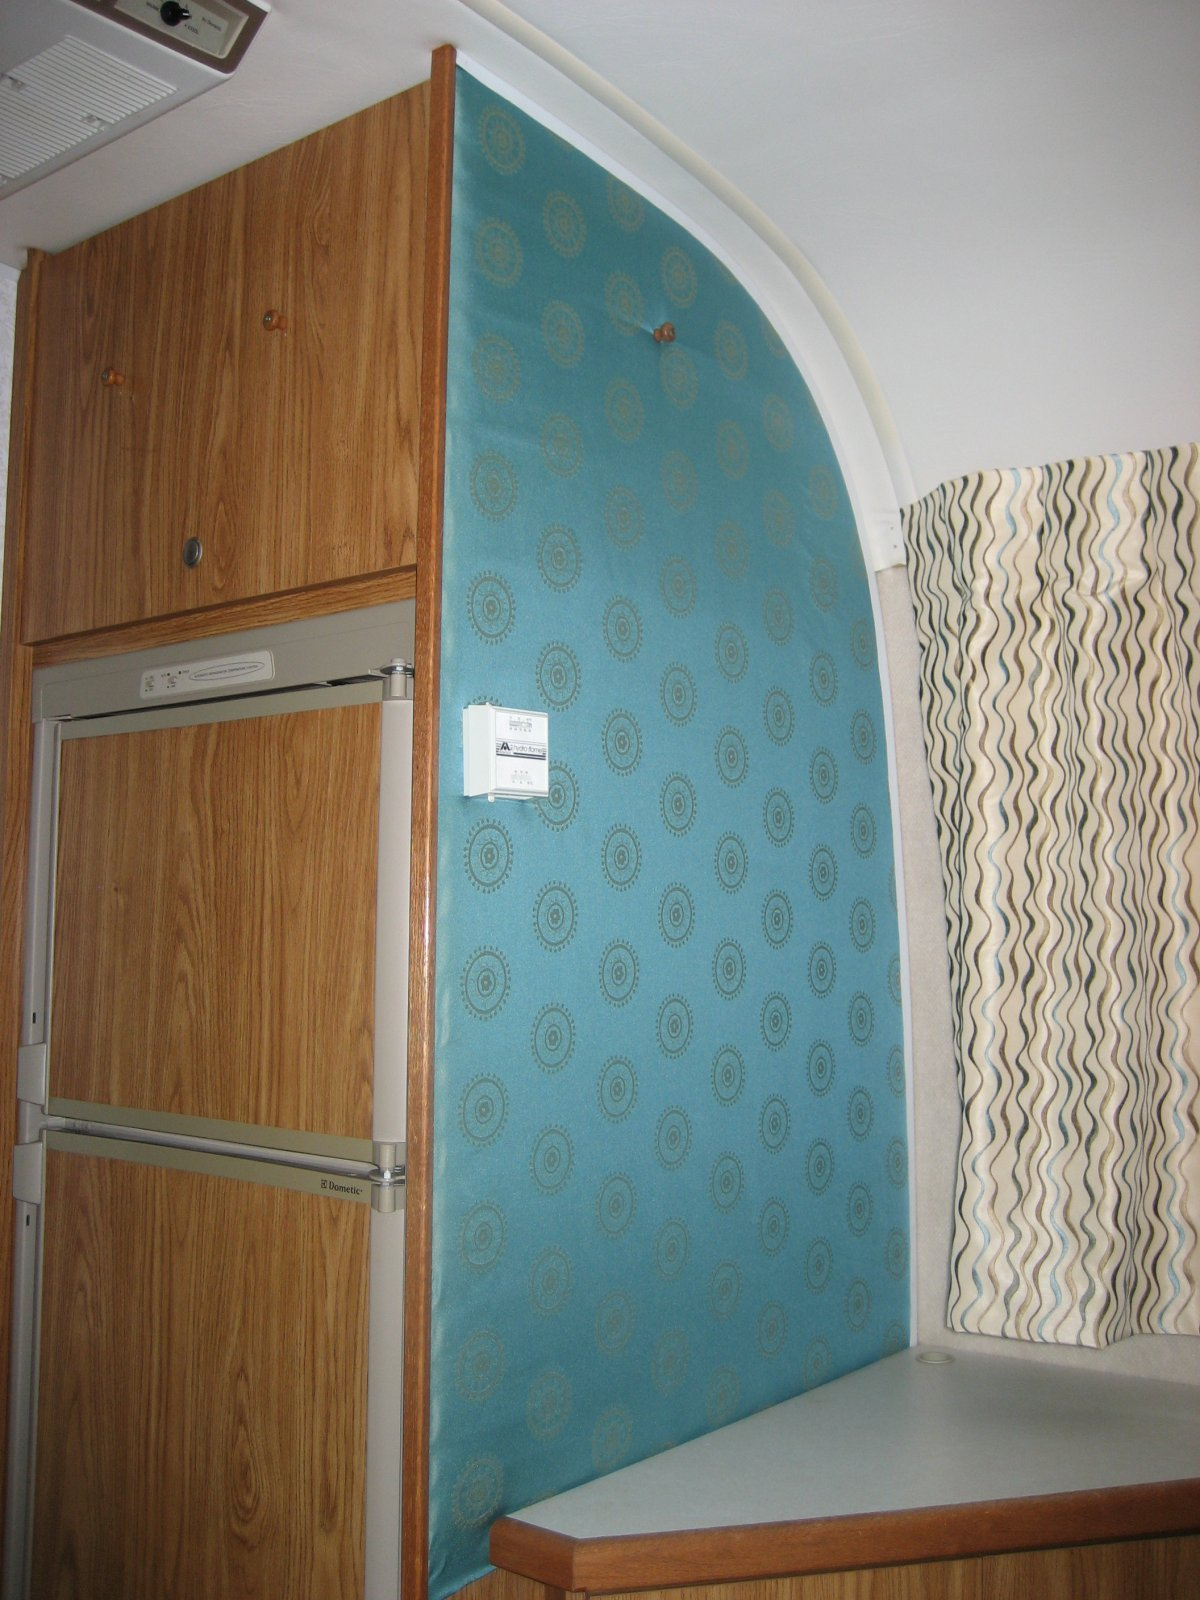 What\'s Behind this Fabric Wall Covering? - Airstream Forums